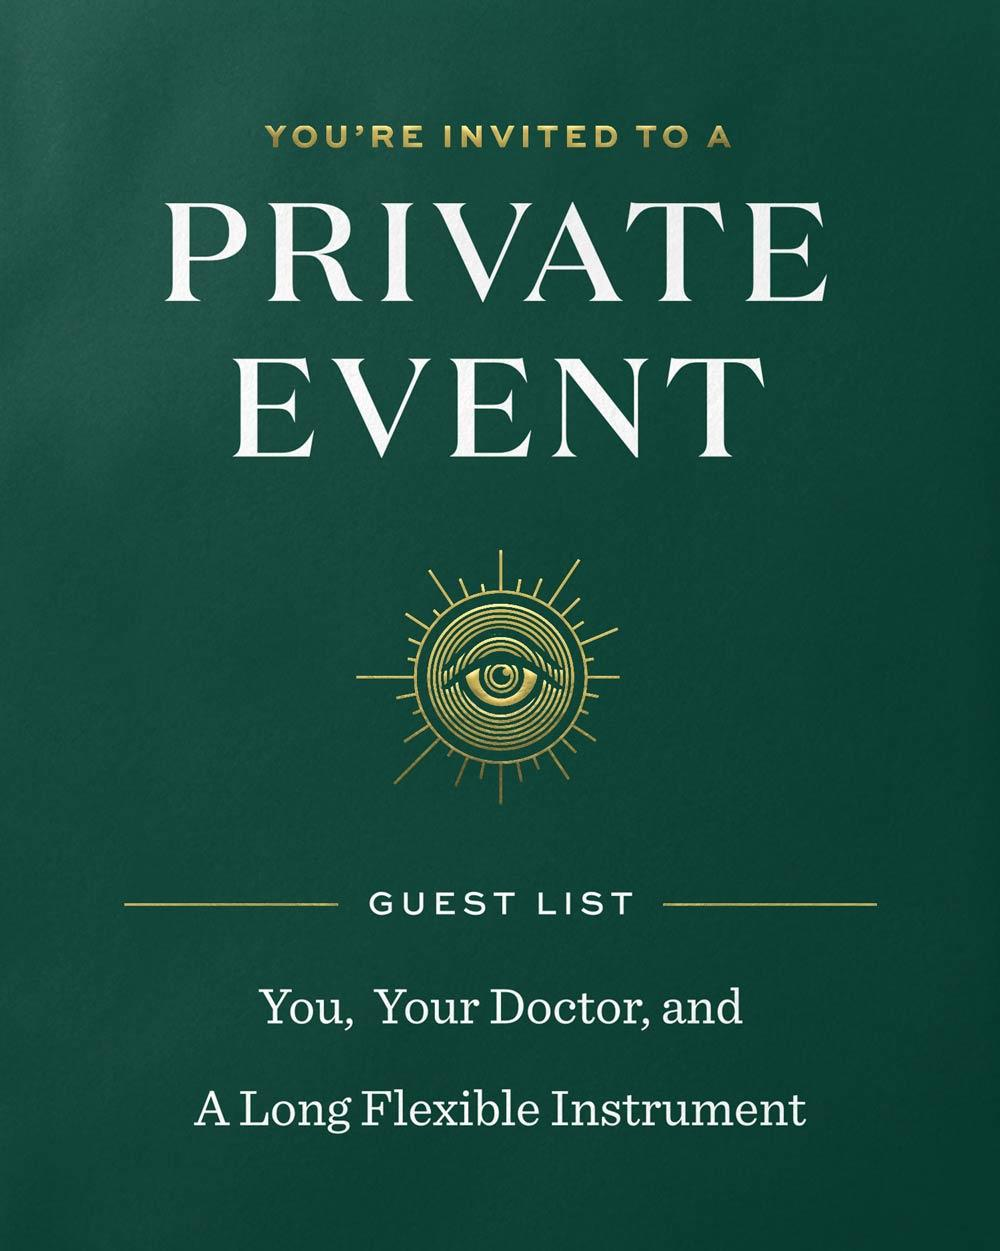 You're invited to a private event. Guest list: You, You Doctor, and A Long Flexible Instrument.